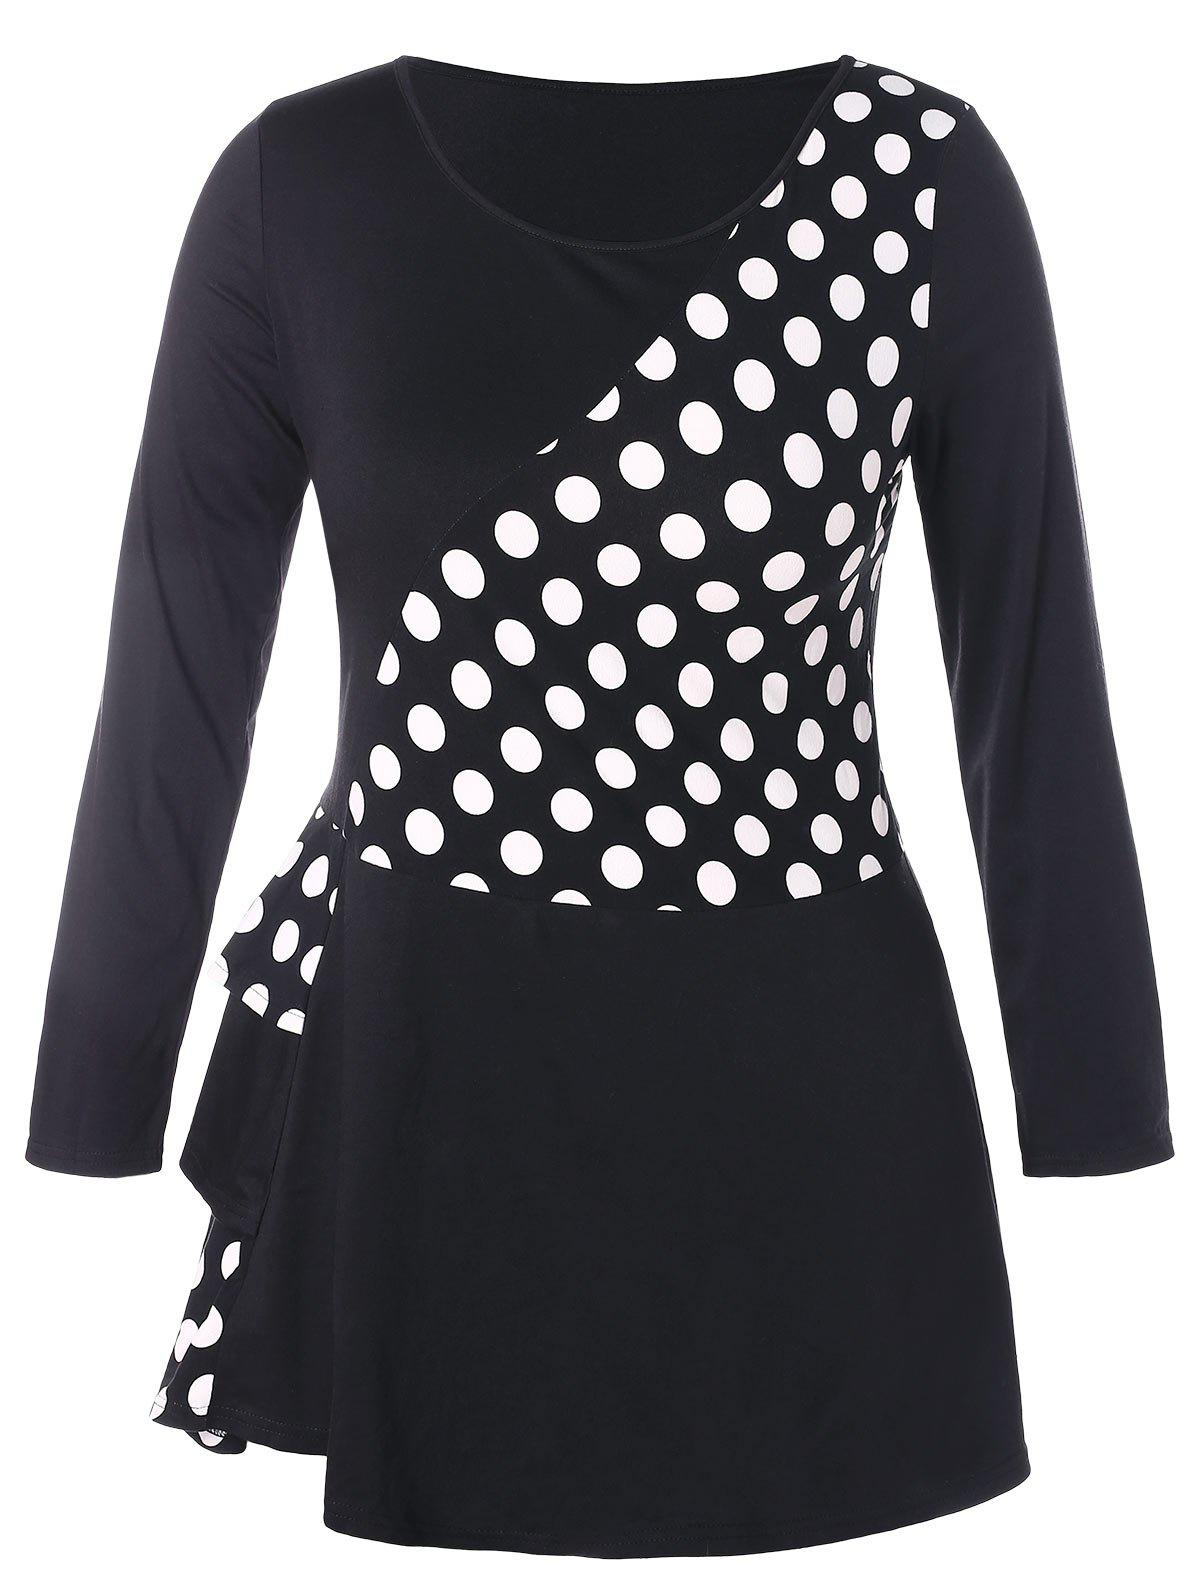 Plus Size Polka Dot Multilayer Flounce Splicing T-shirt - BLACK 2X